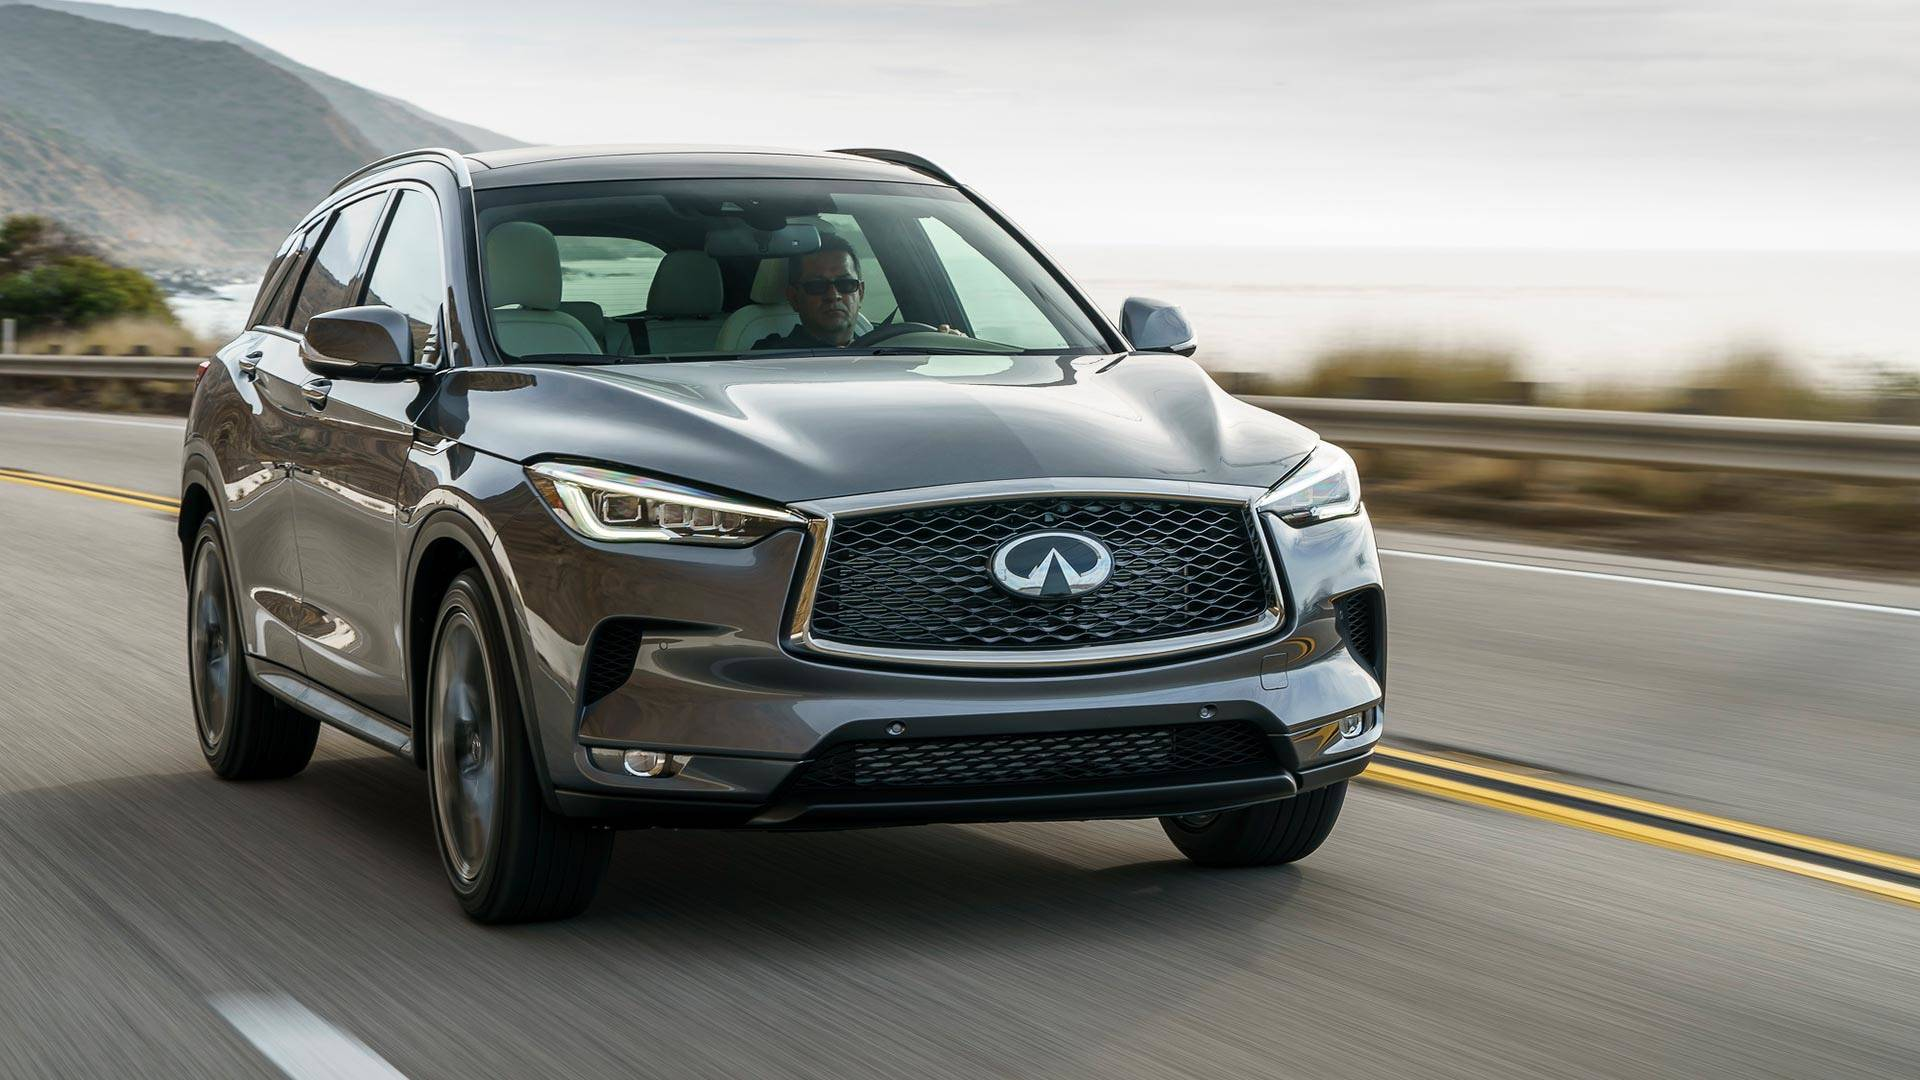 2019 Infiniti QX50: News, Specs, MPG, Price >> 2019 Infiniti Qx50 First Drive Not Your Everyday Suv